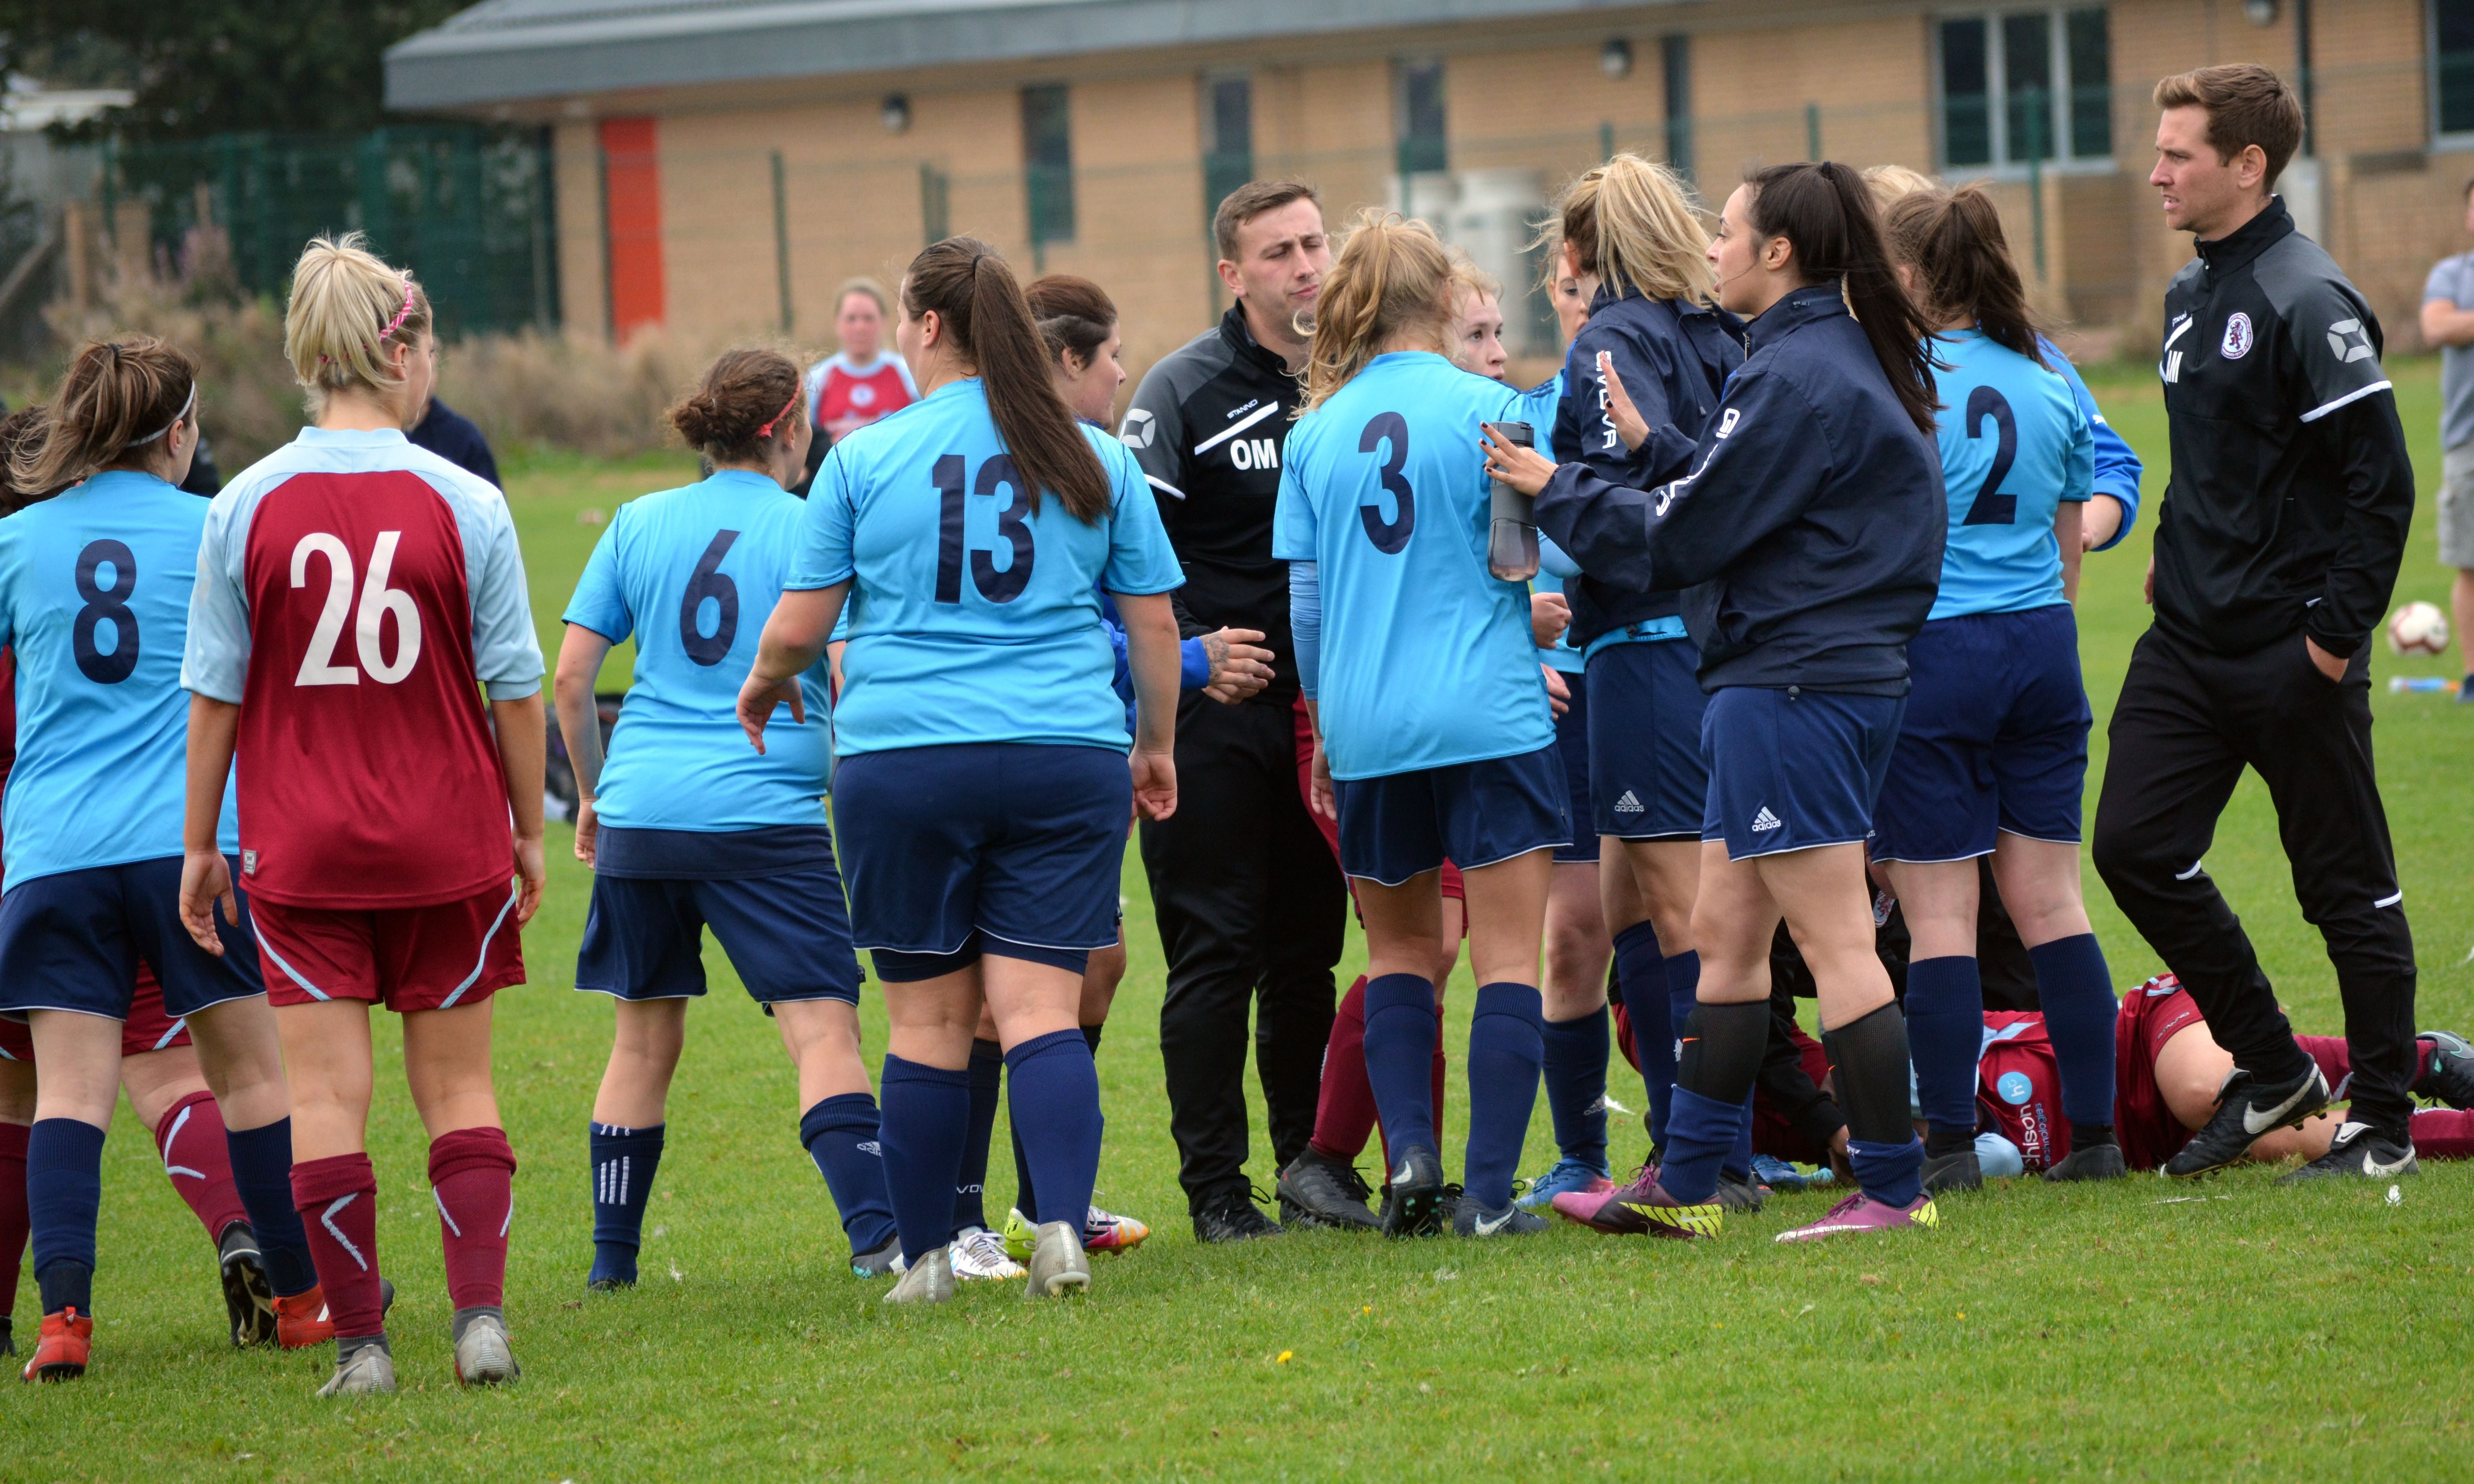 The match between Dundee City WFC (in blue) and Dryburgh Ladies ended in a player being hospitalised.